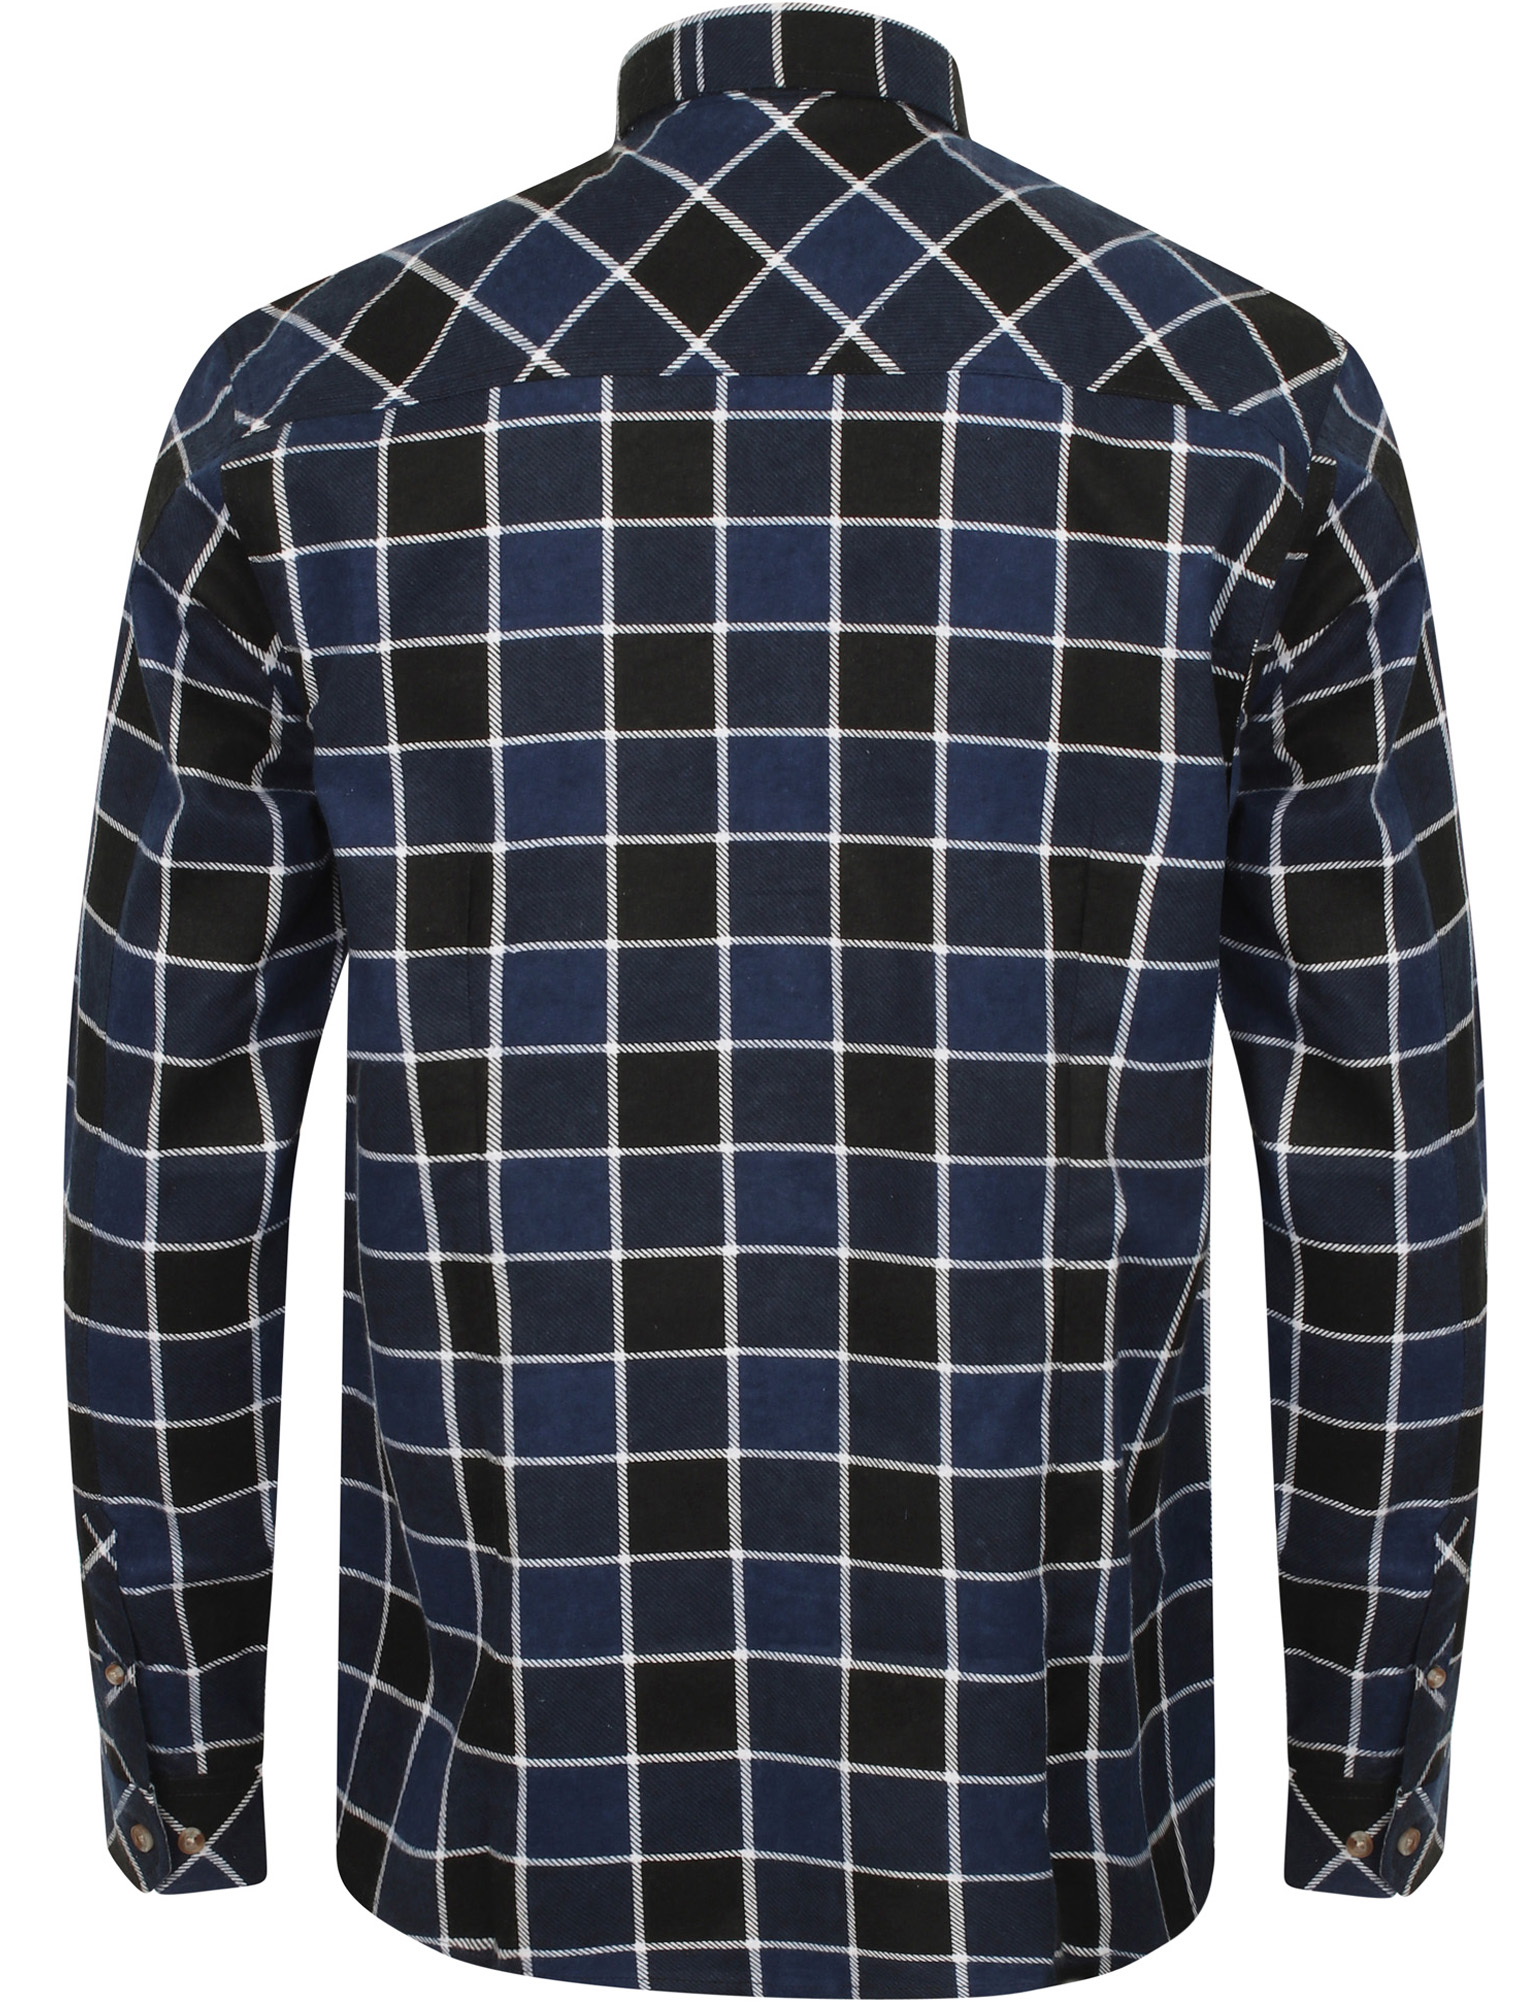 New-Mens-Tokyo-Laundry-Cotton-Long-Sleeve-Checked-Flannel-Shirt-Size-S-XL thumbnail 21